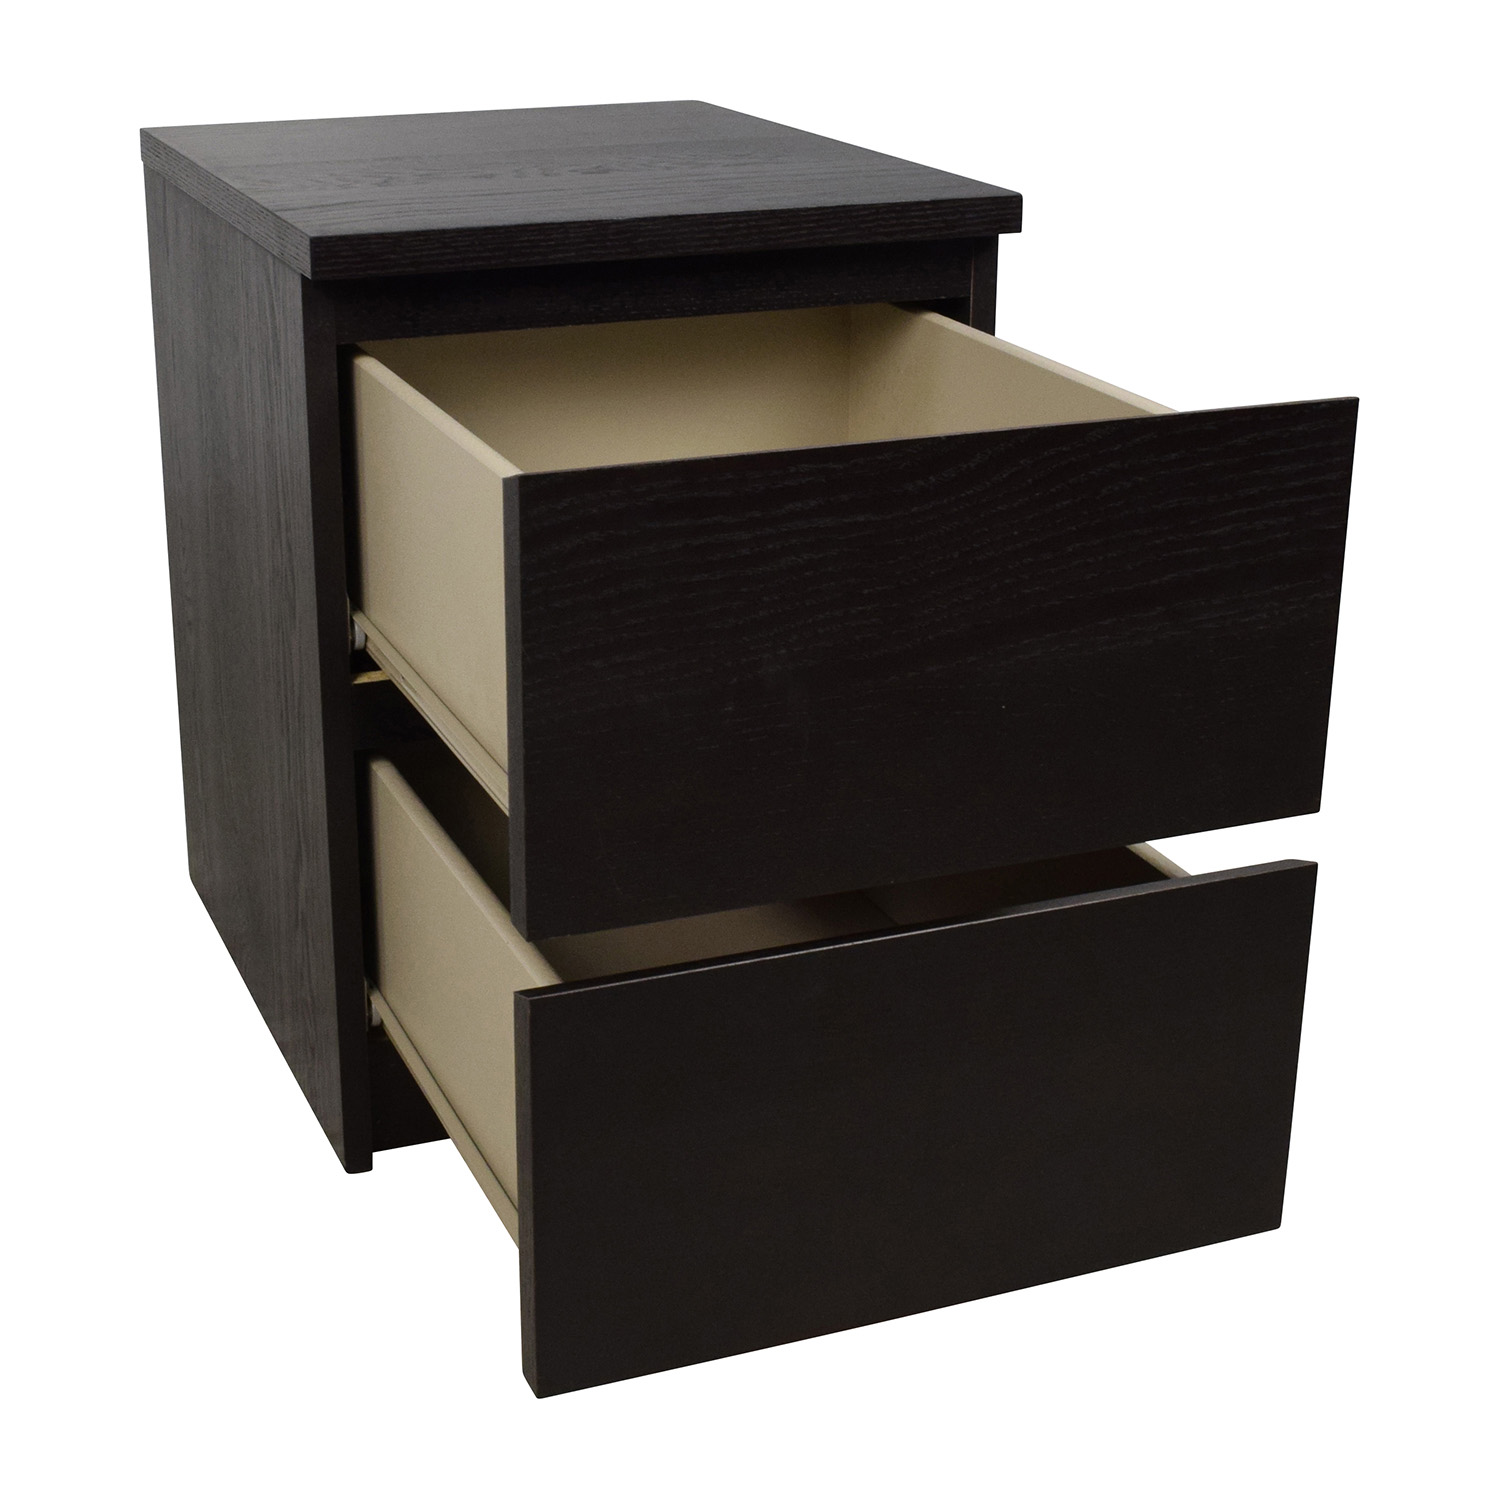 67 Off Ikea Ikea Malm Black Two Drawer Nightstand Tables